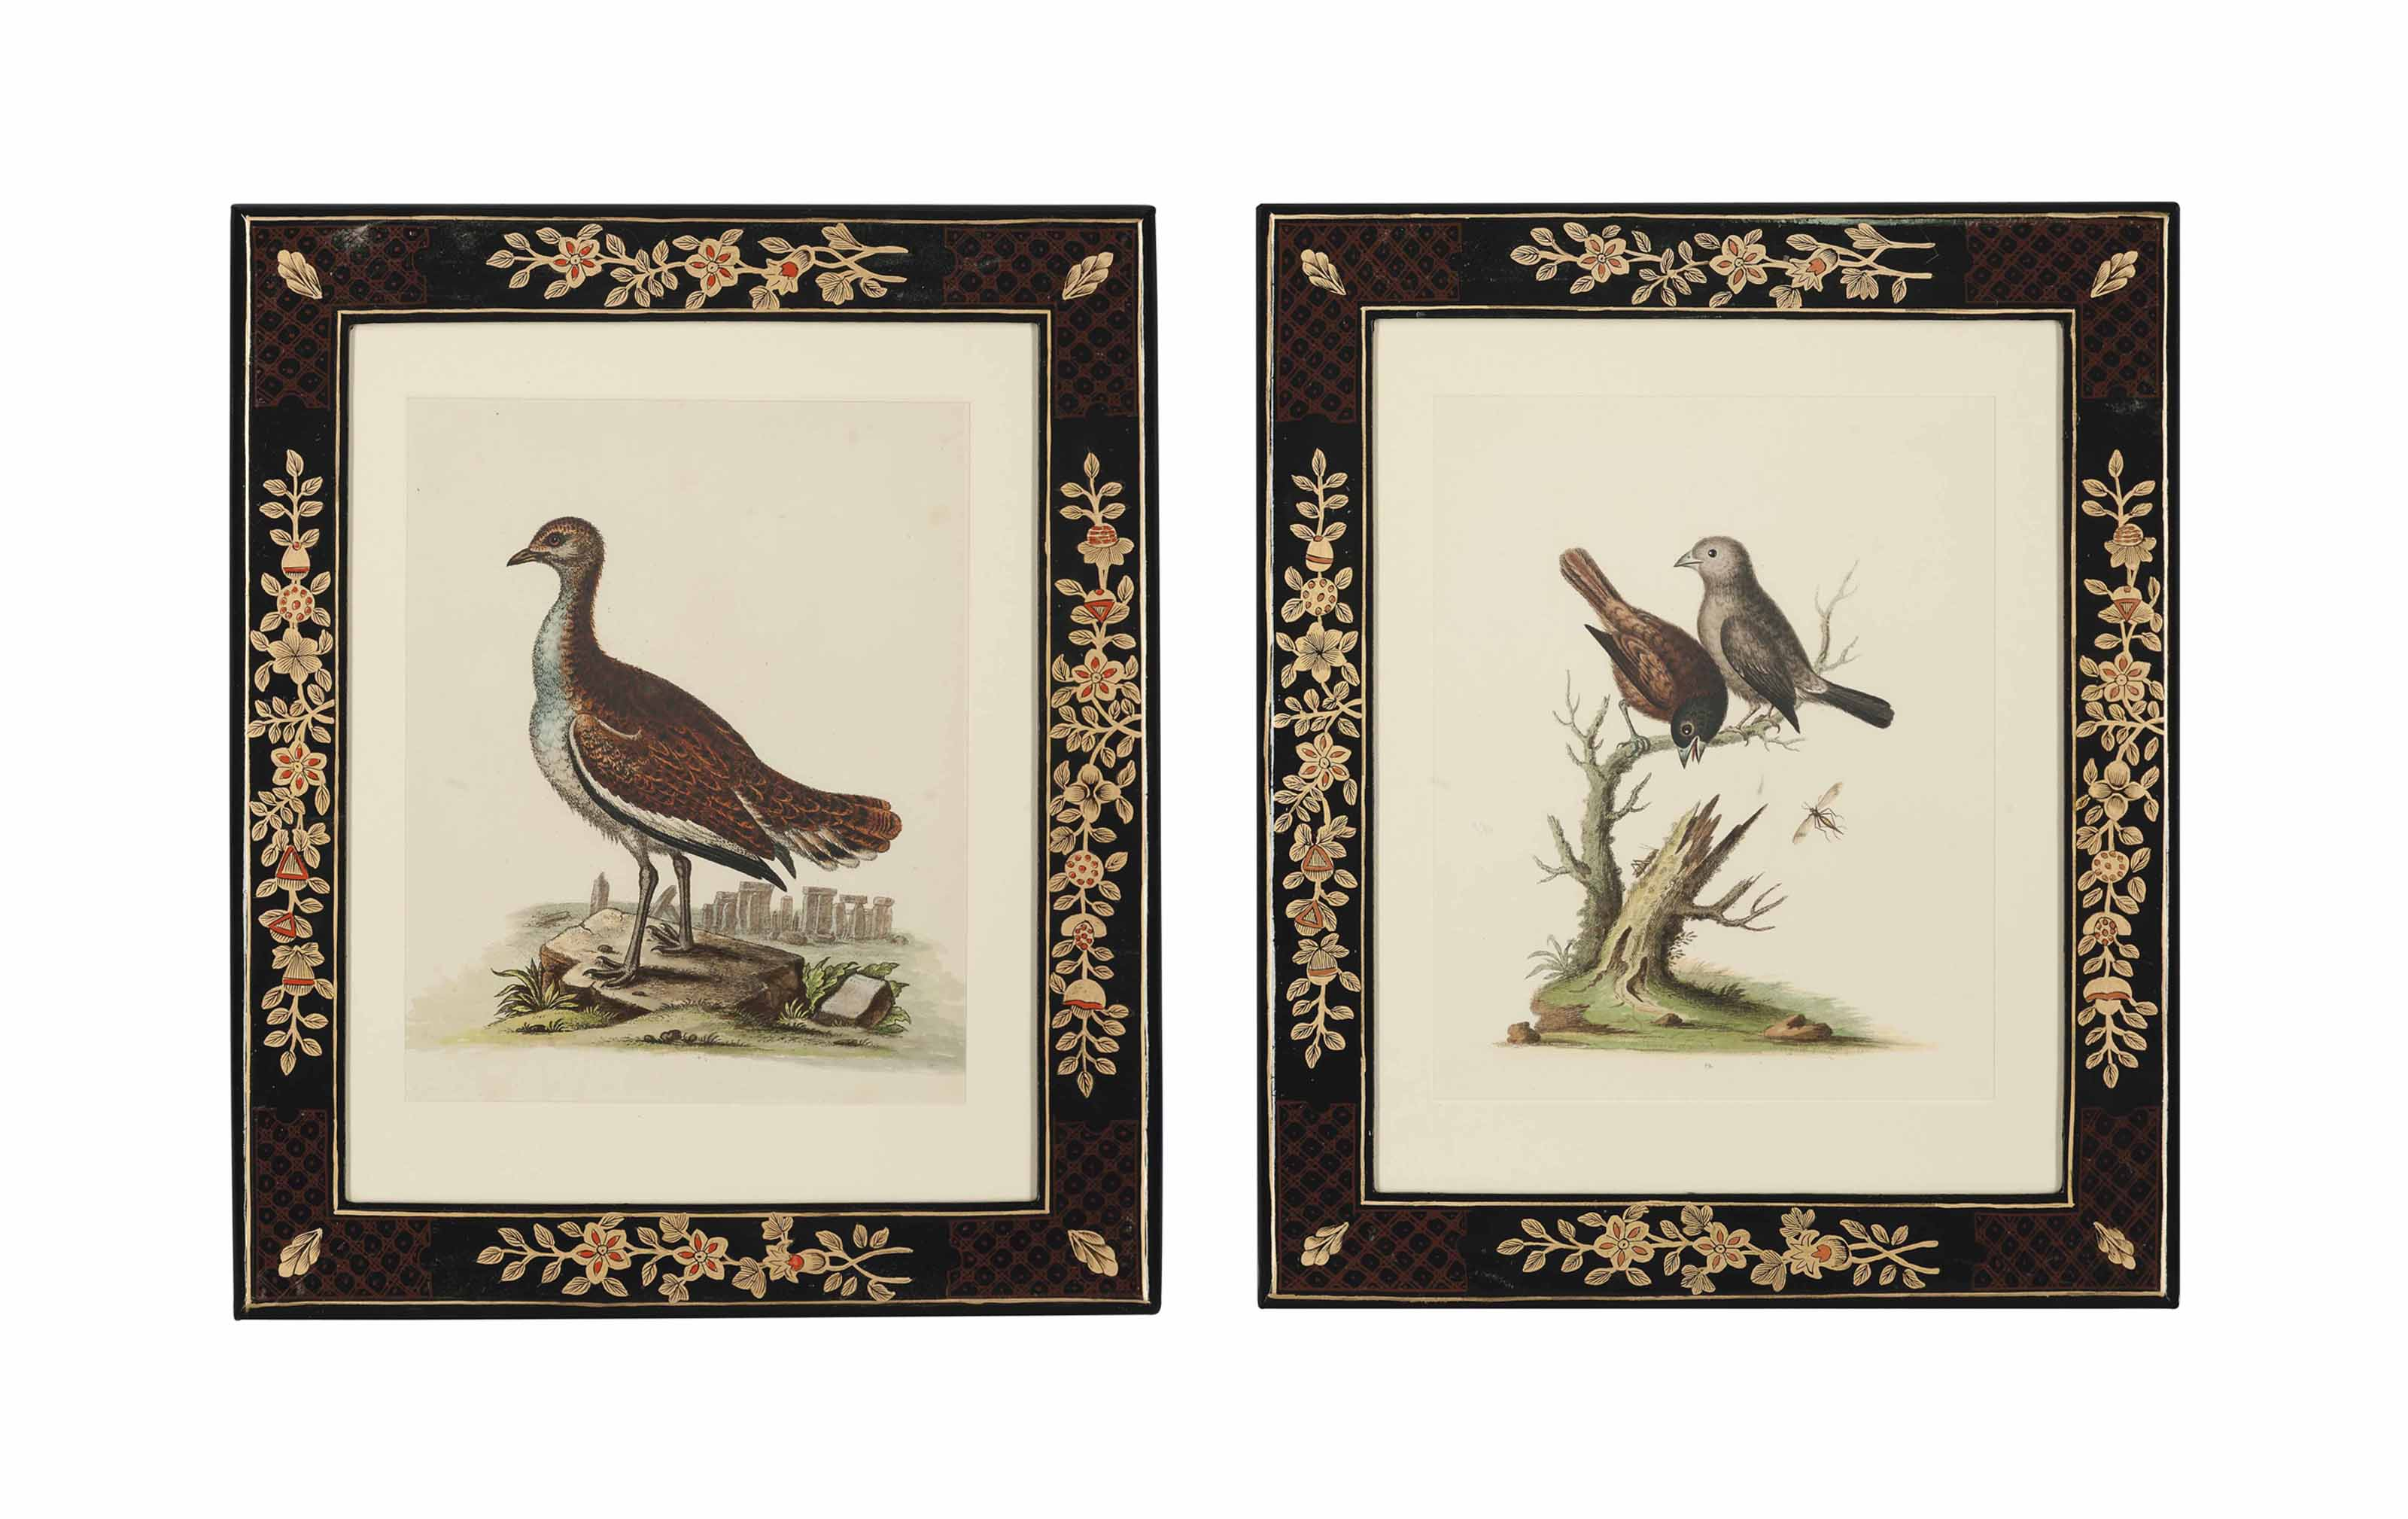 Twelve Ornithological Studies, from A Natural History of Uncommon Birds